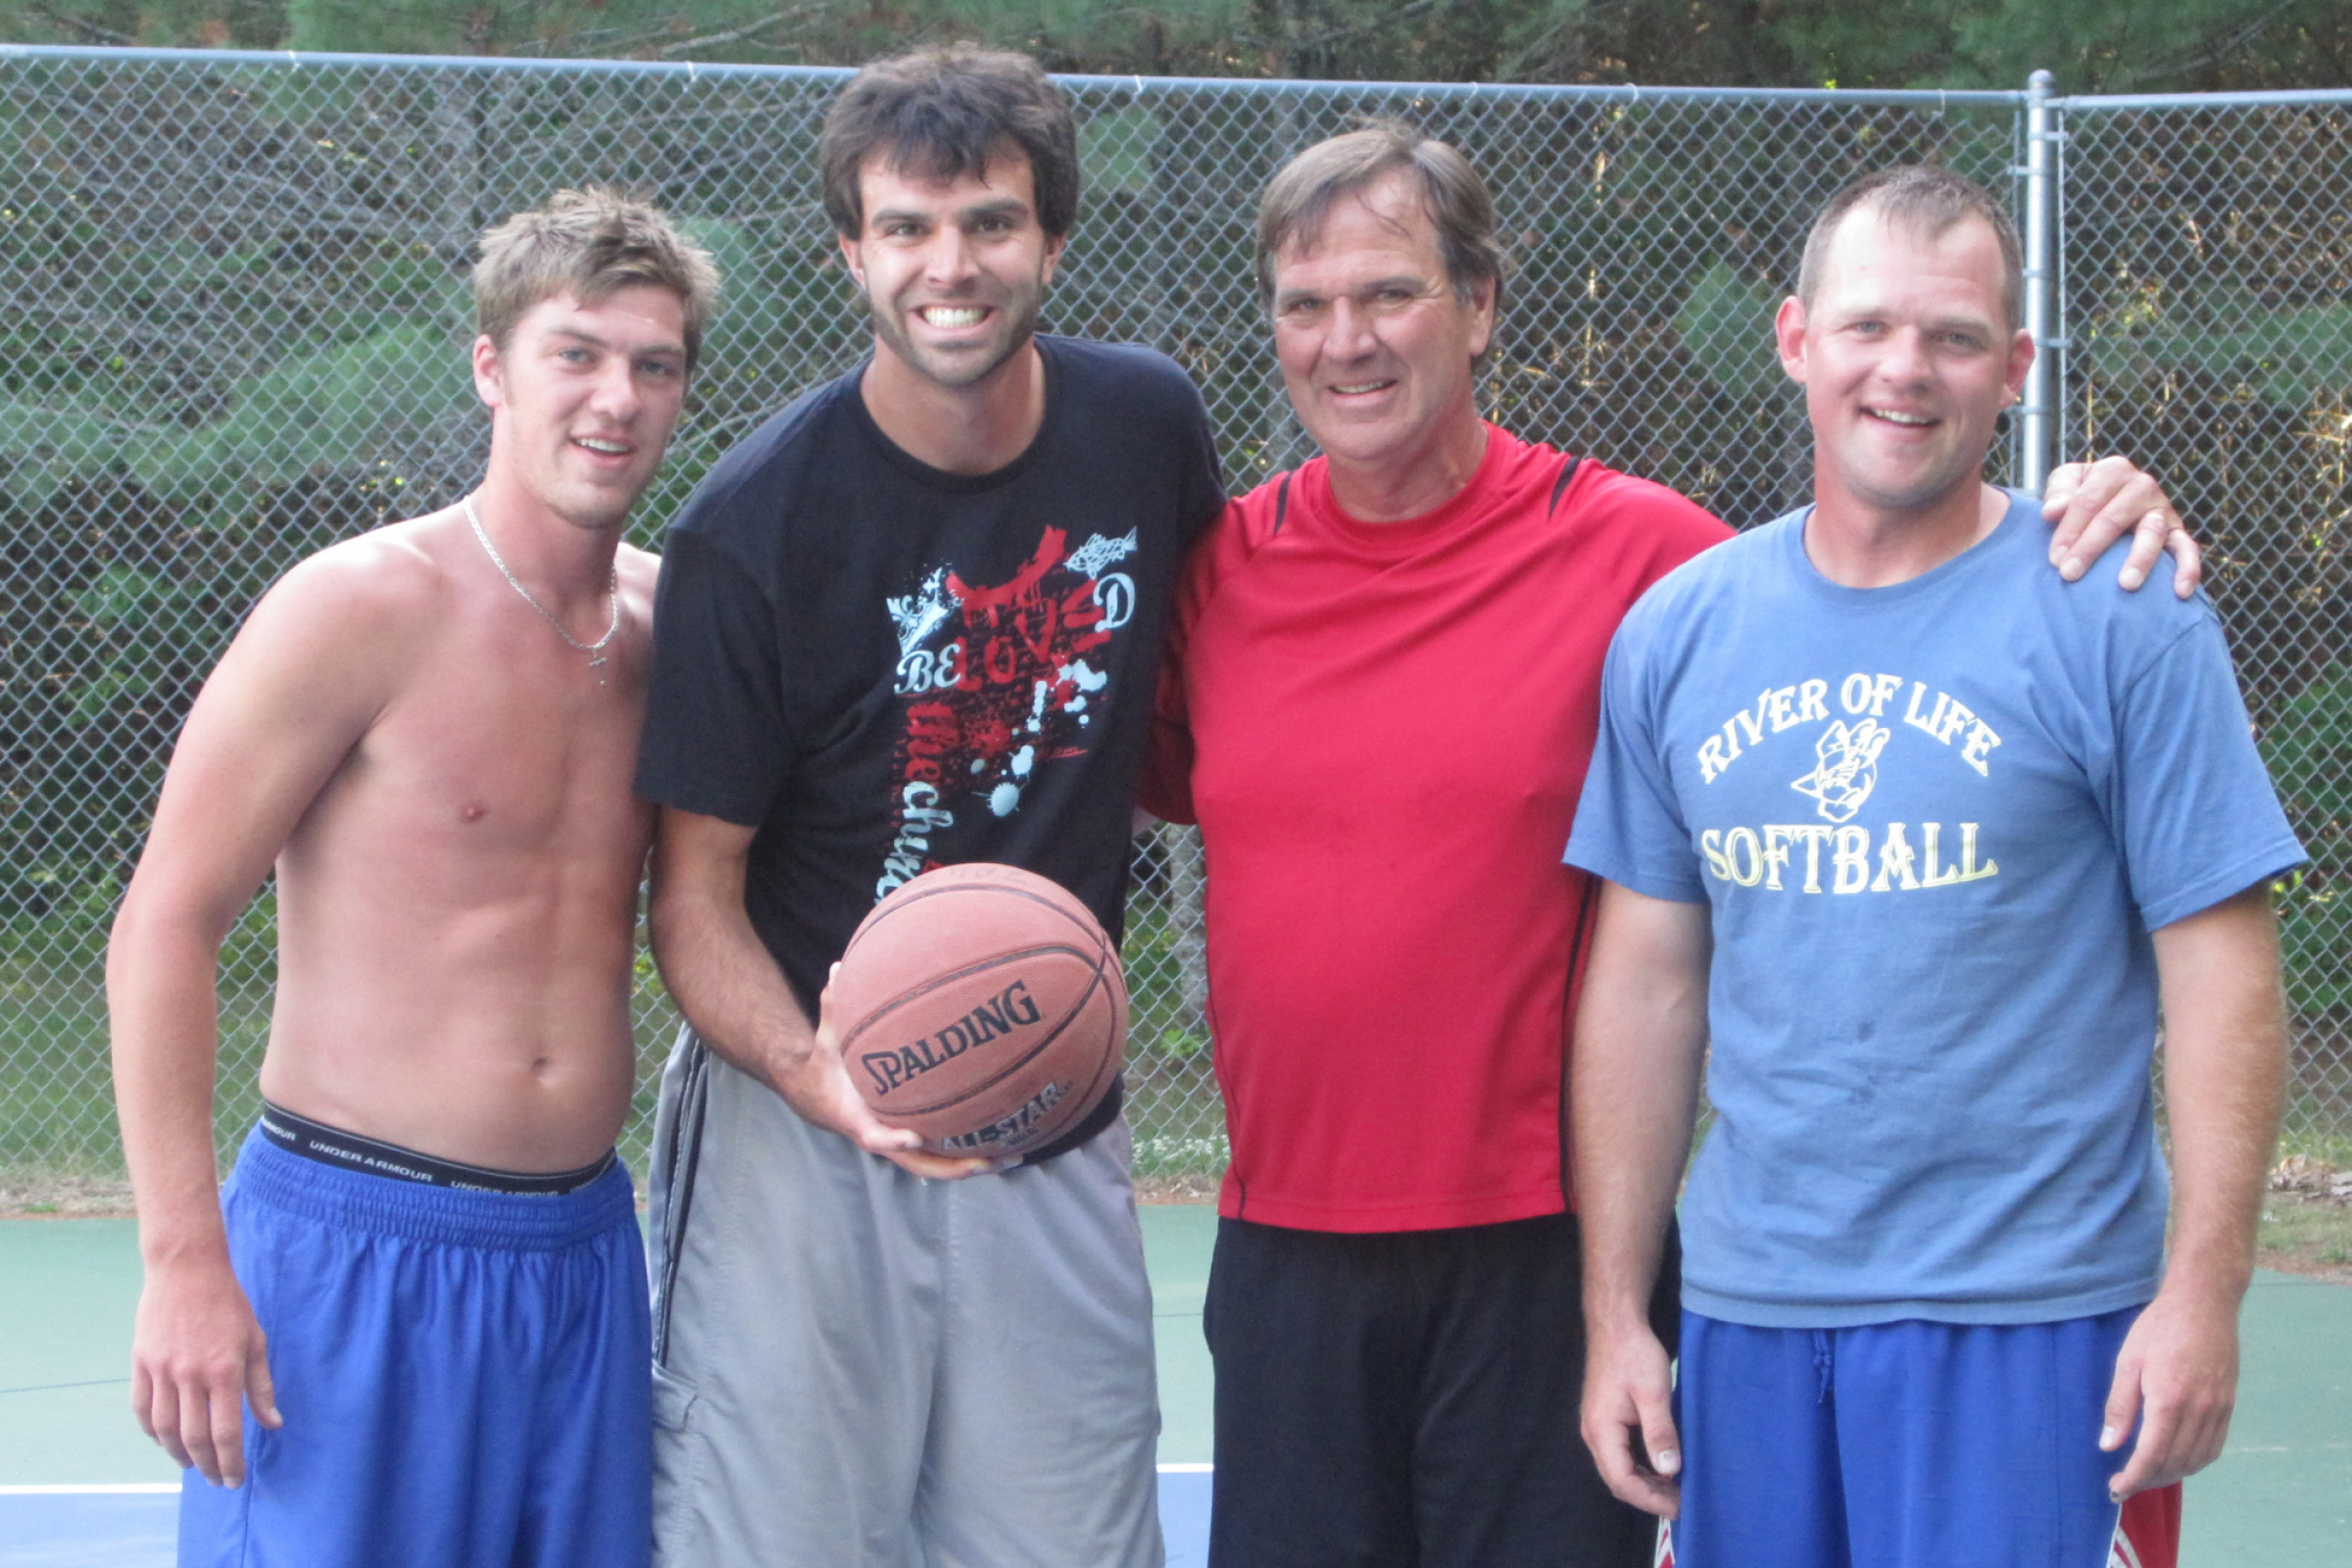 Basketball has been Chuck's first love & a friendly game with the boys always became competitive!